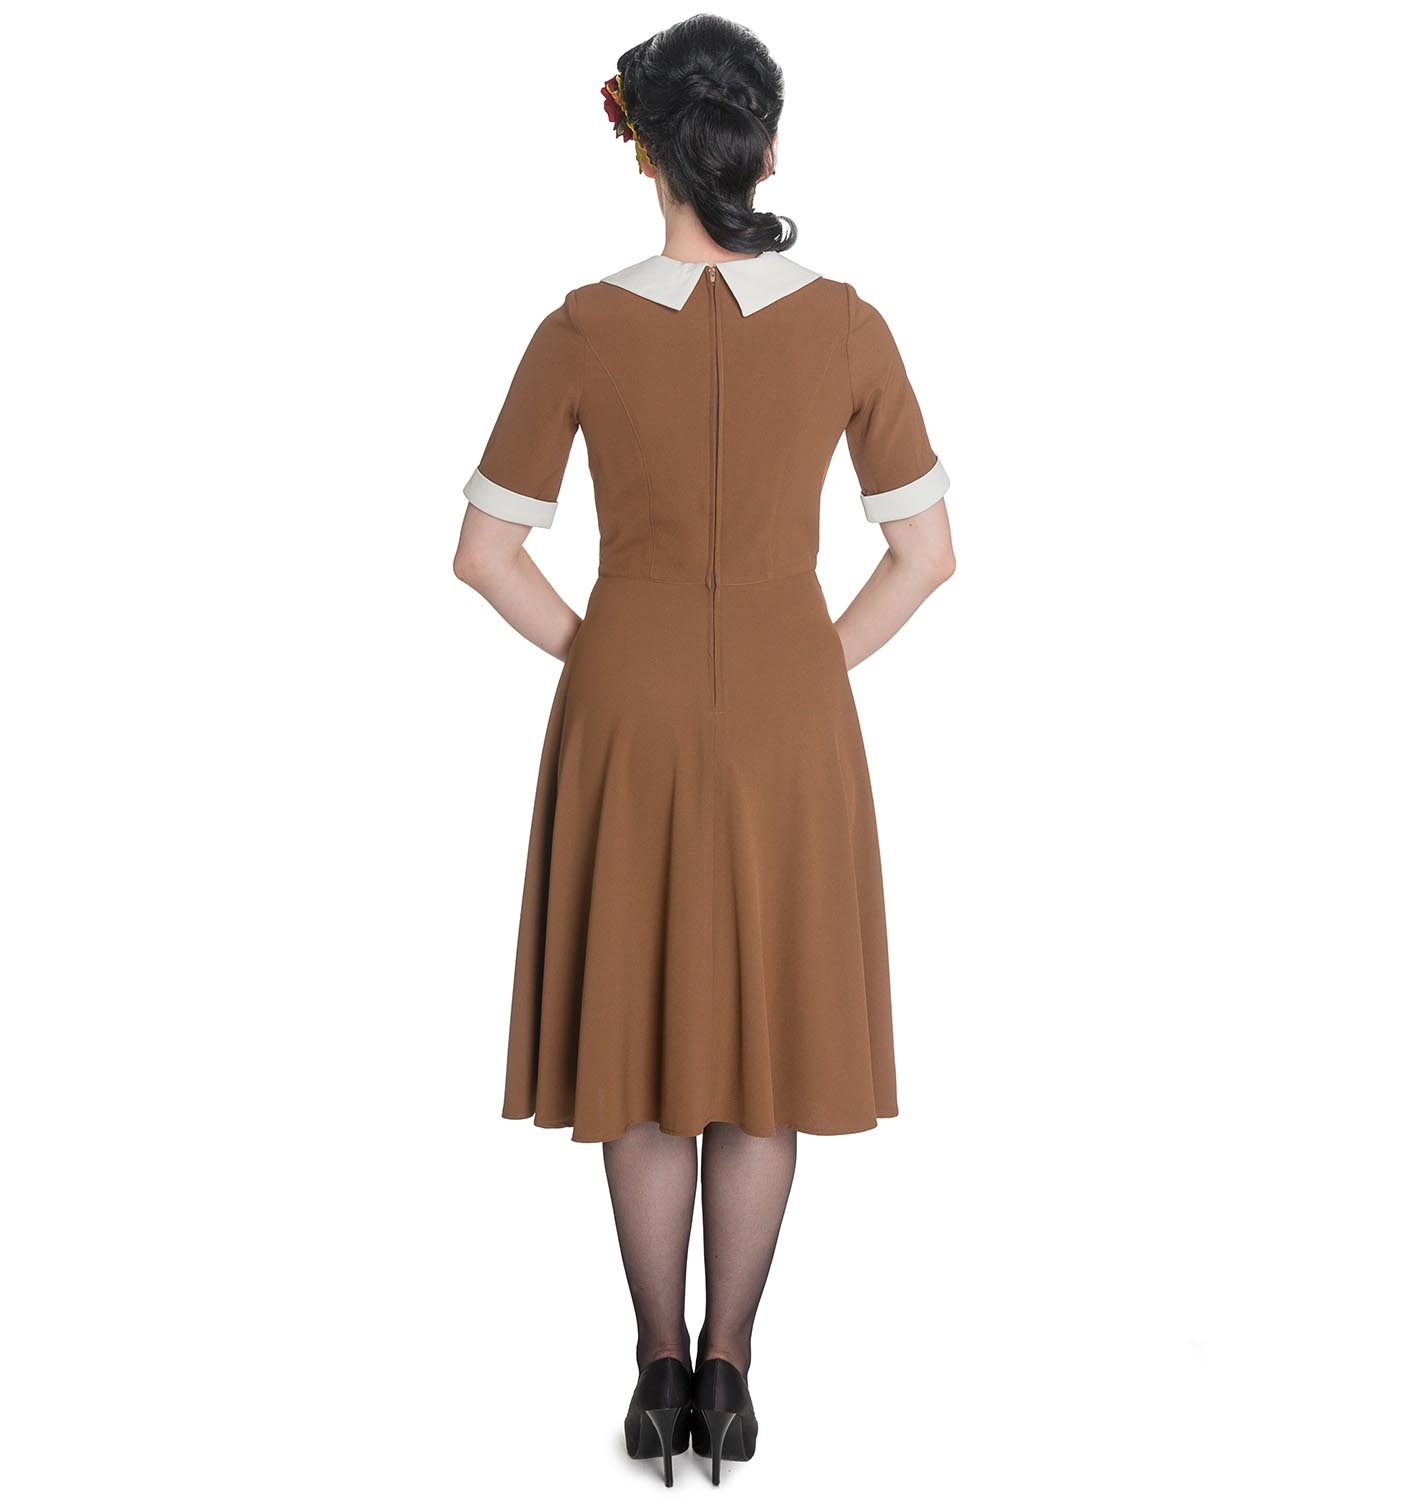 Hell-Bunny-Vintage-Pin-Up-Tea-Dress-40s-50s-KIM-Tobacco-Brown thumbnail 5